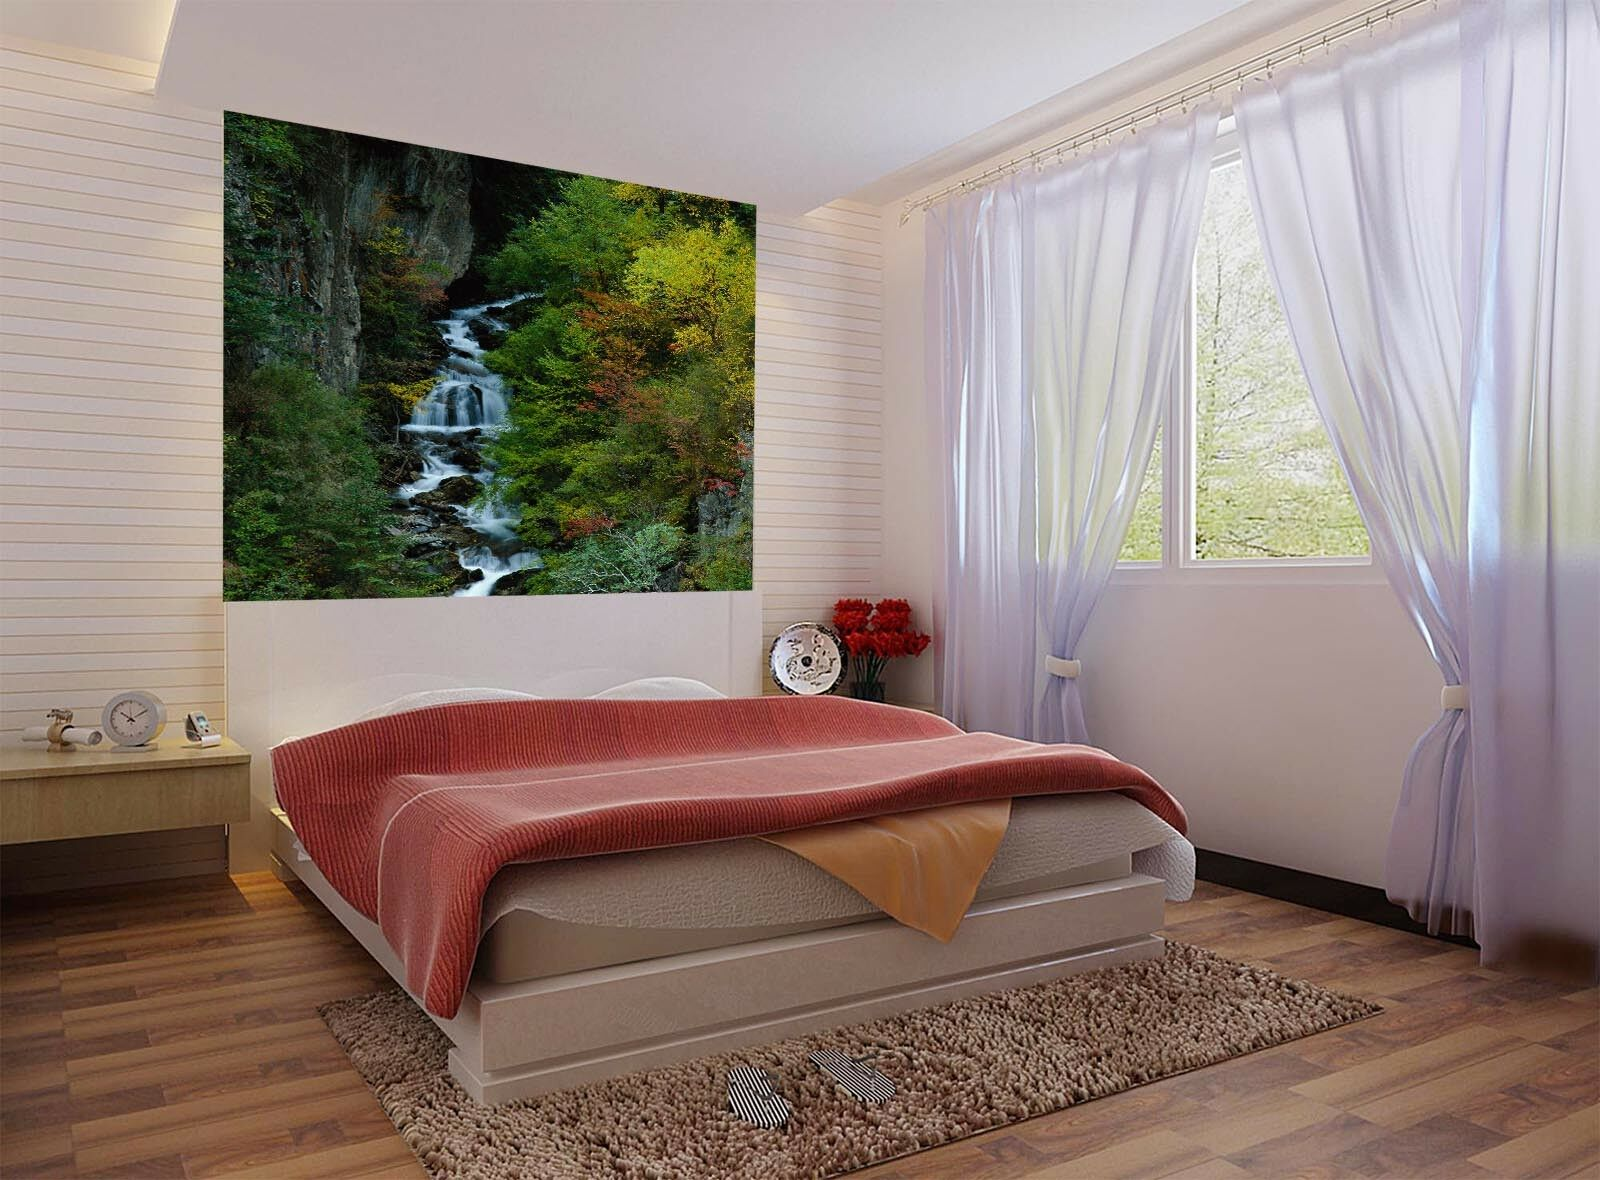 3D Shrub Forest Creek 6 Wall Paper Wall Print Decal Wall Deco Indoor Mural